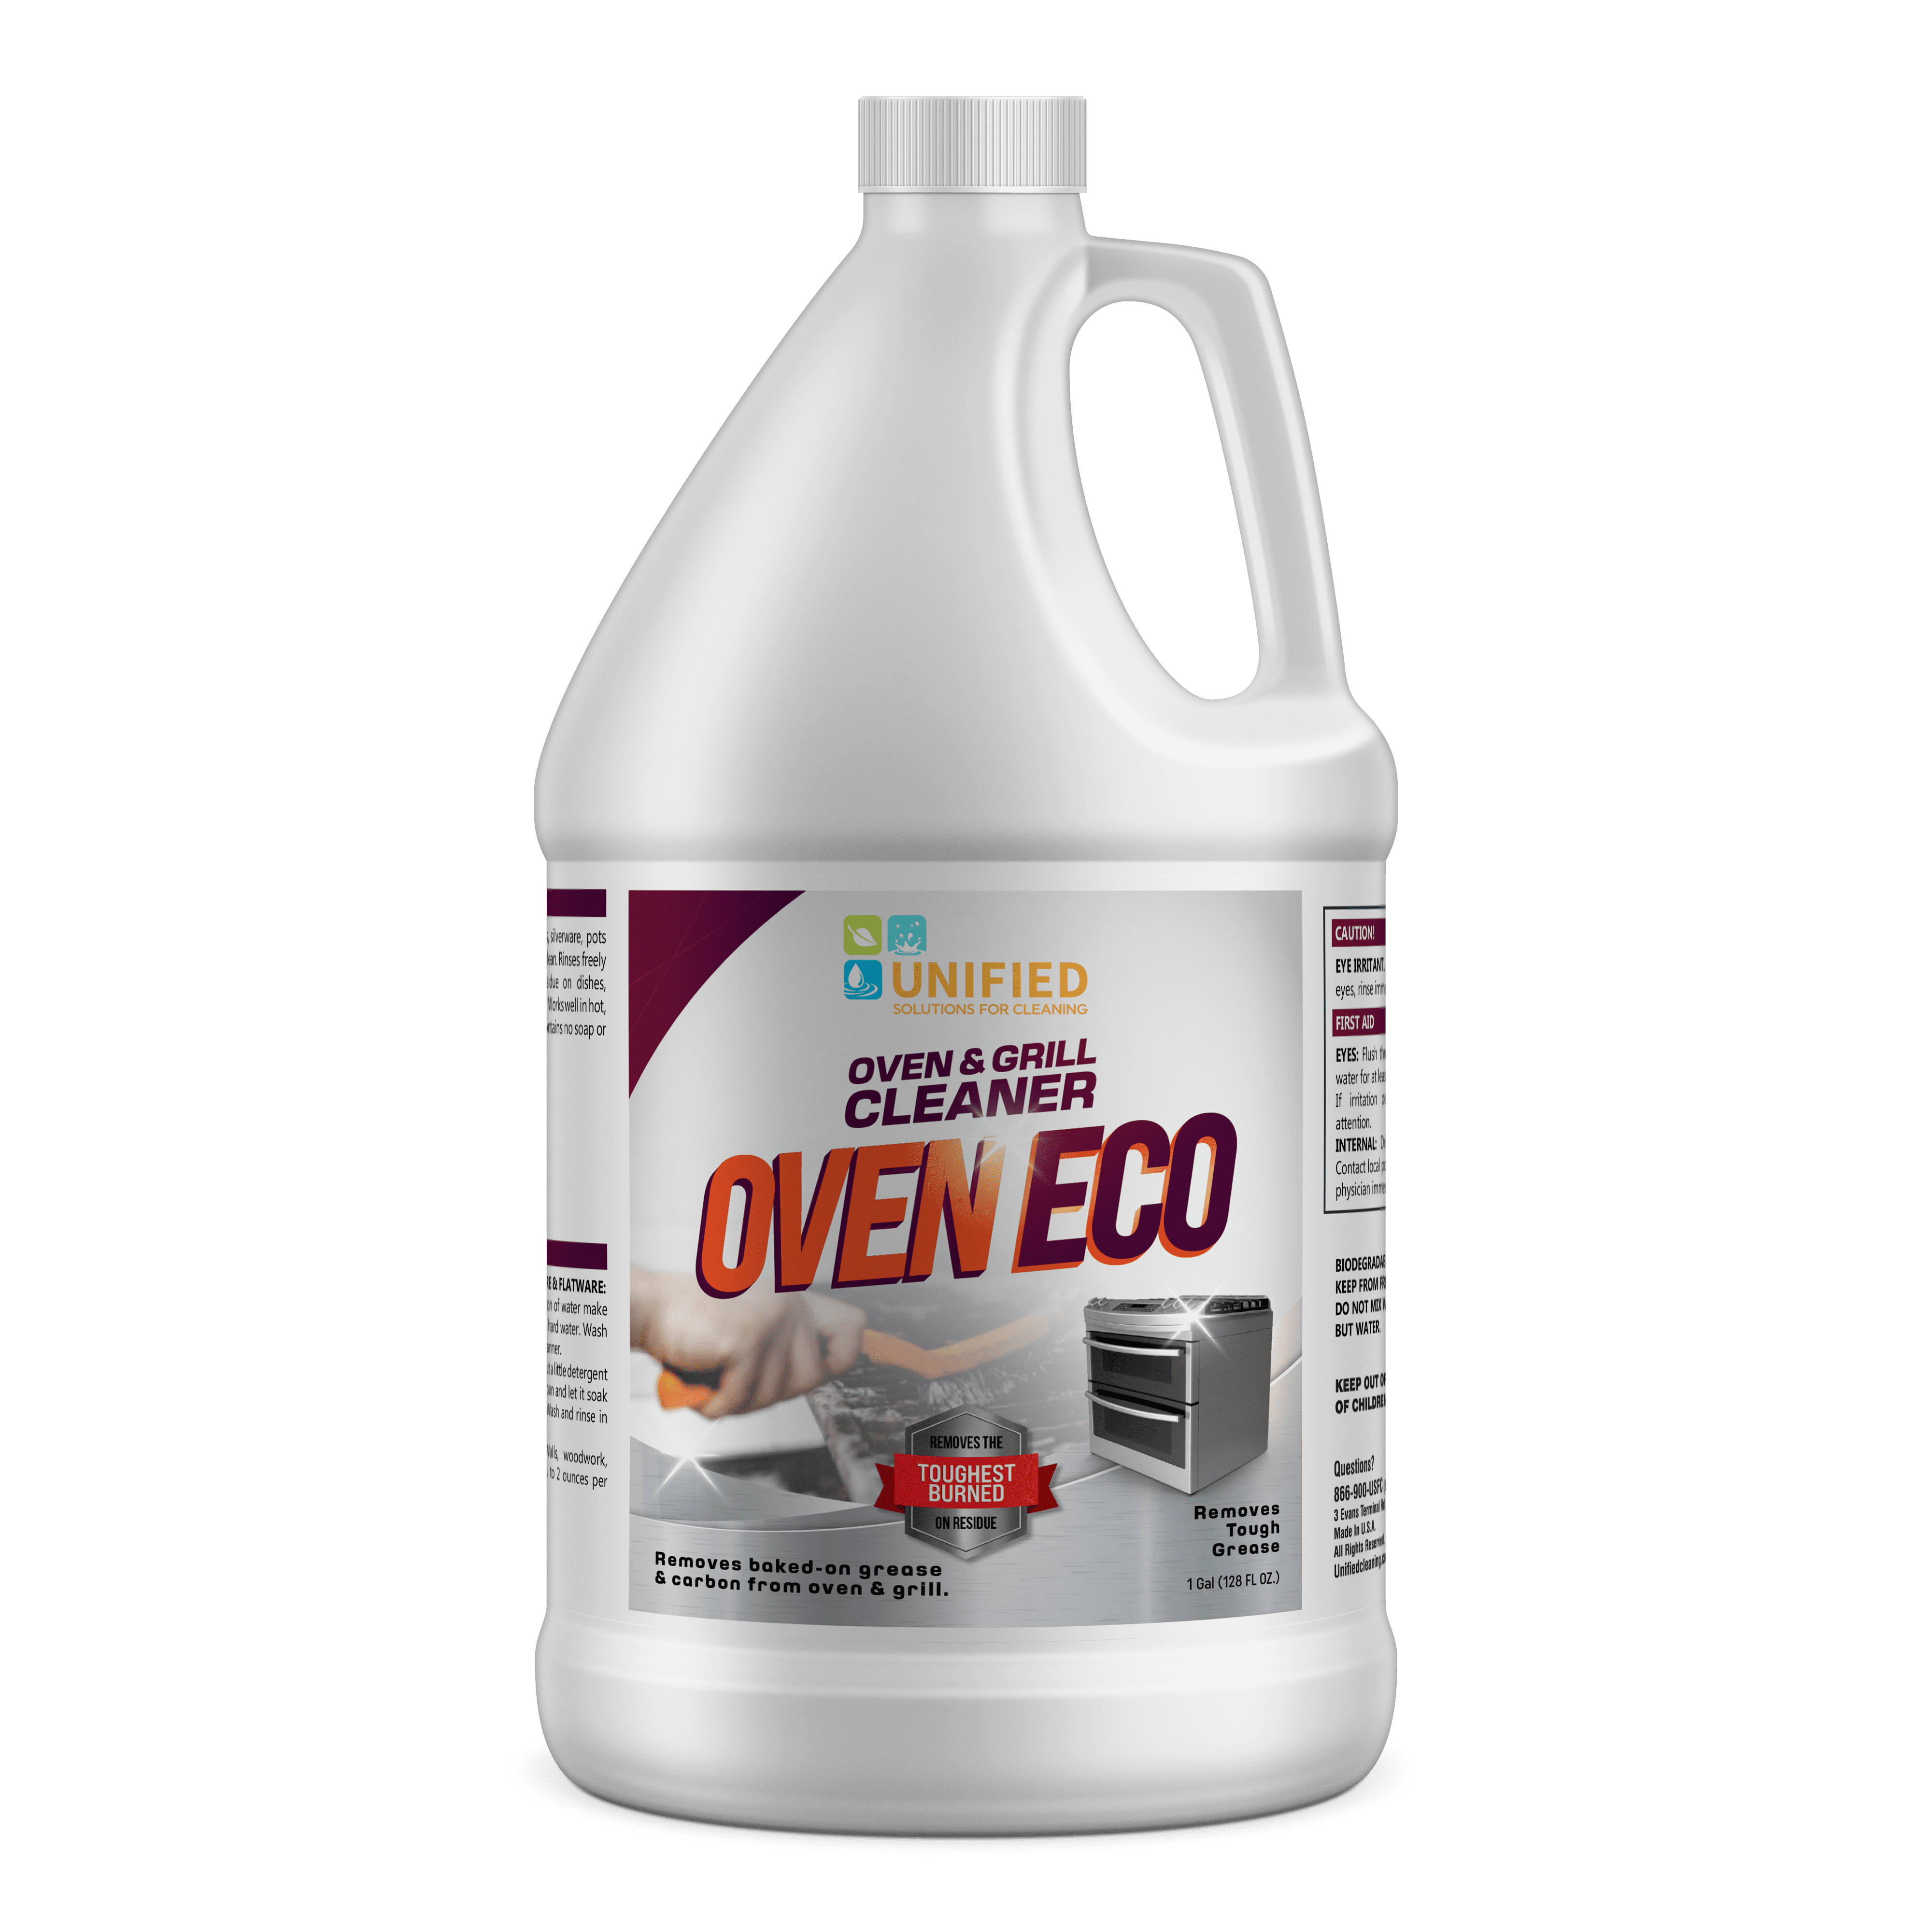 Oven Eco Oven Cleaner